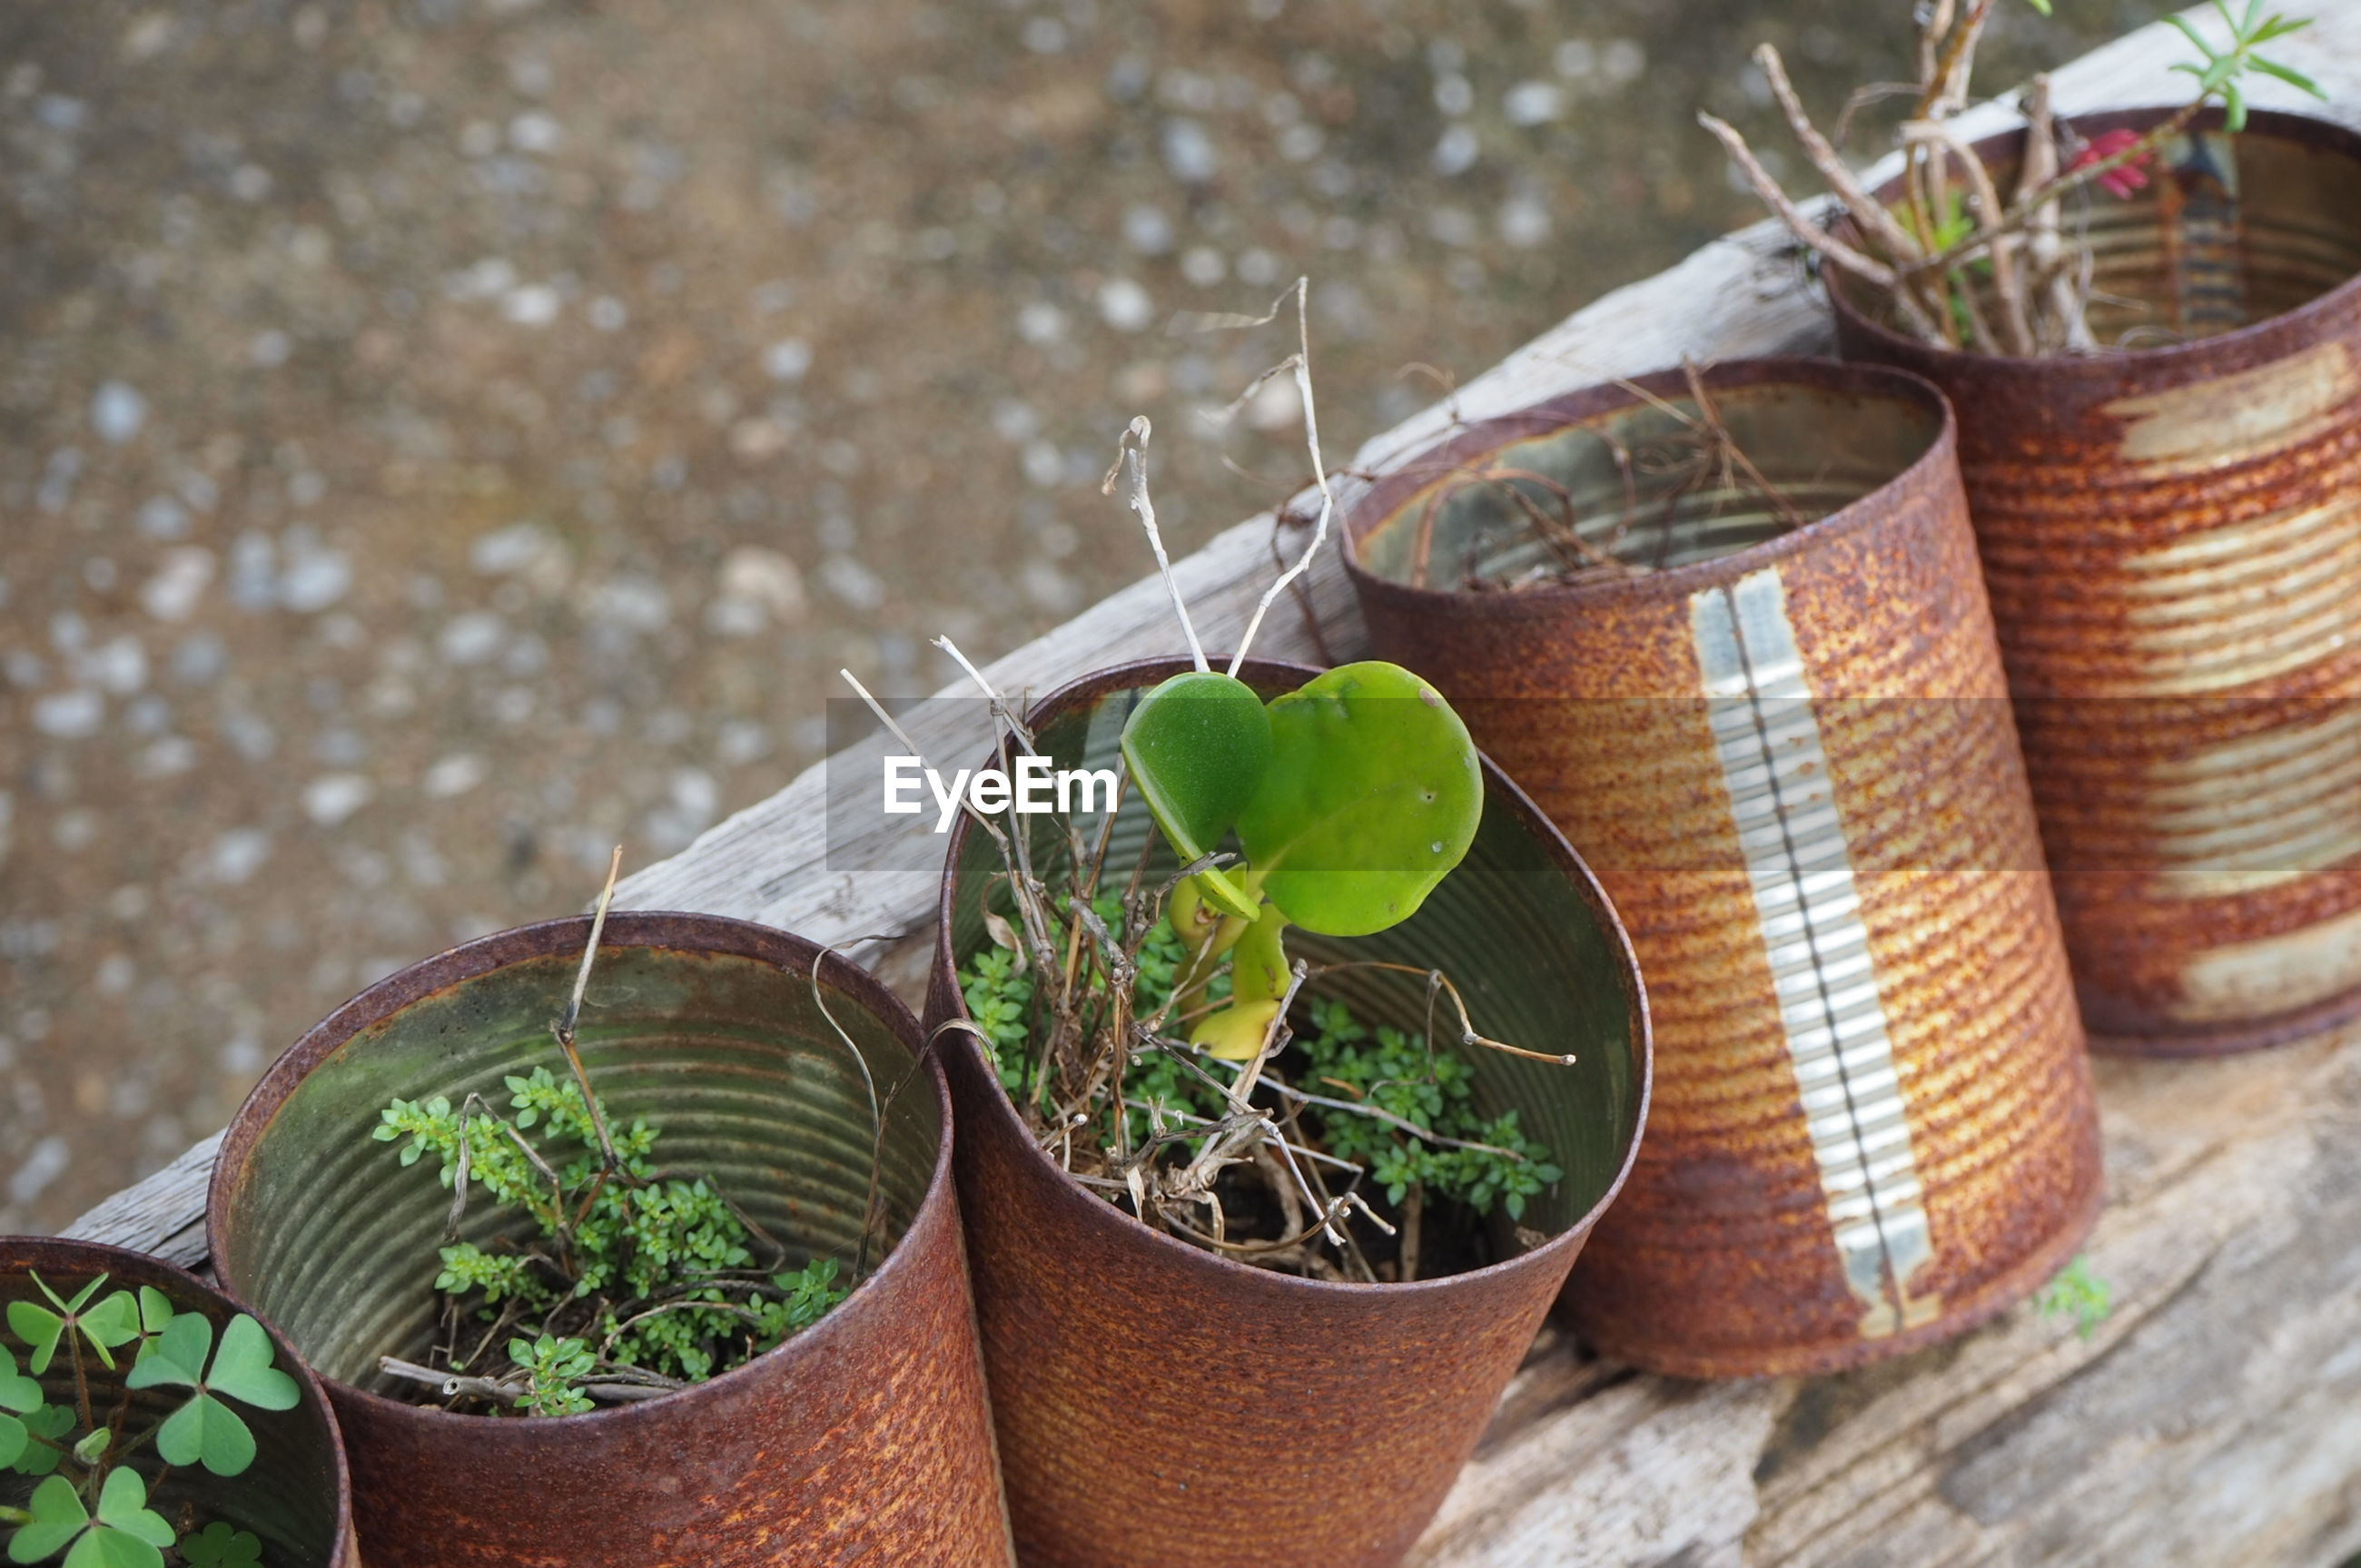 CLOSE-UP OF POTTED PLANT IN CONTAINER